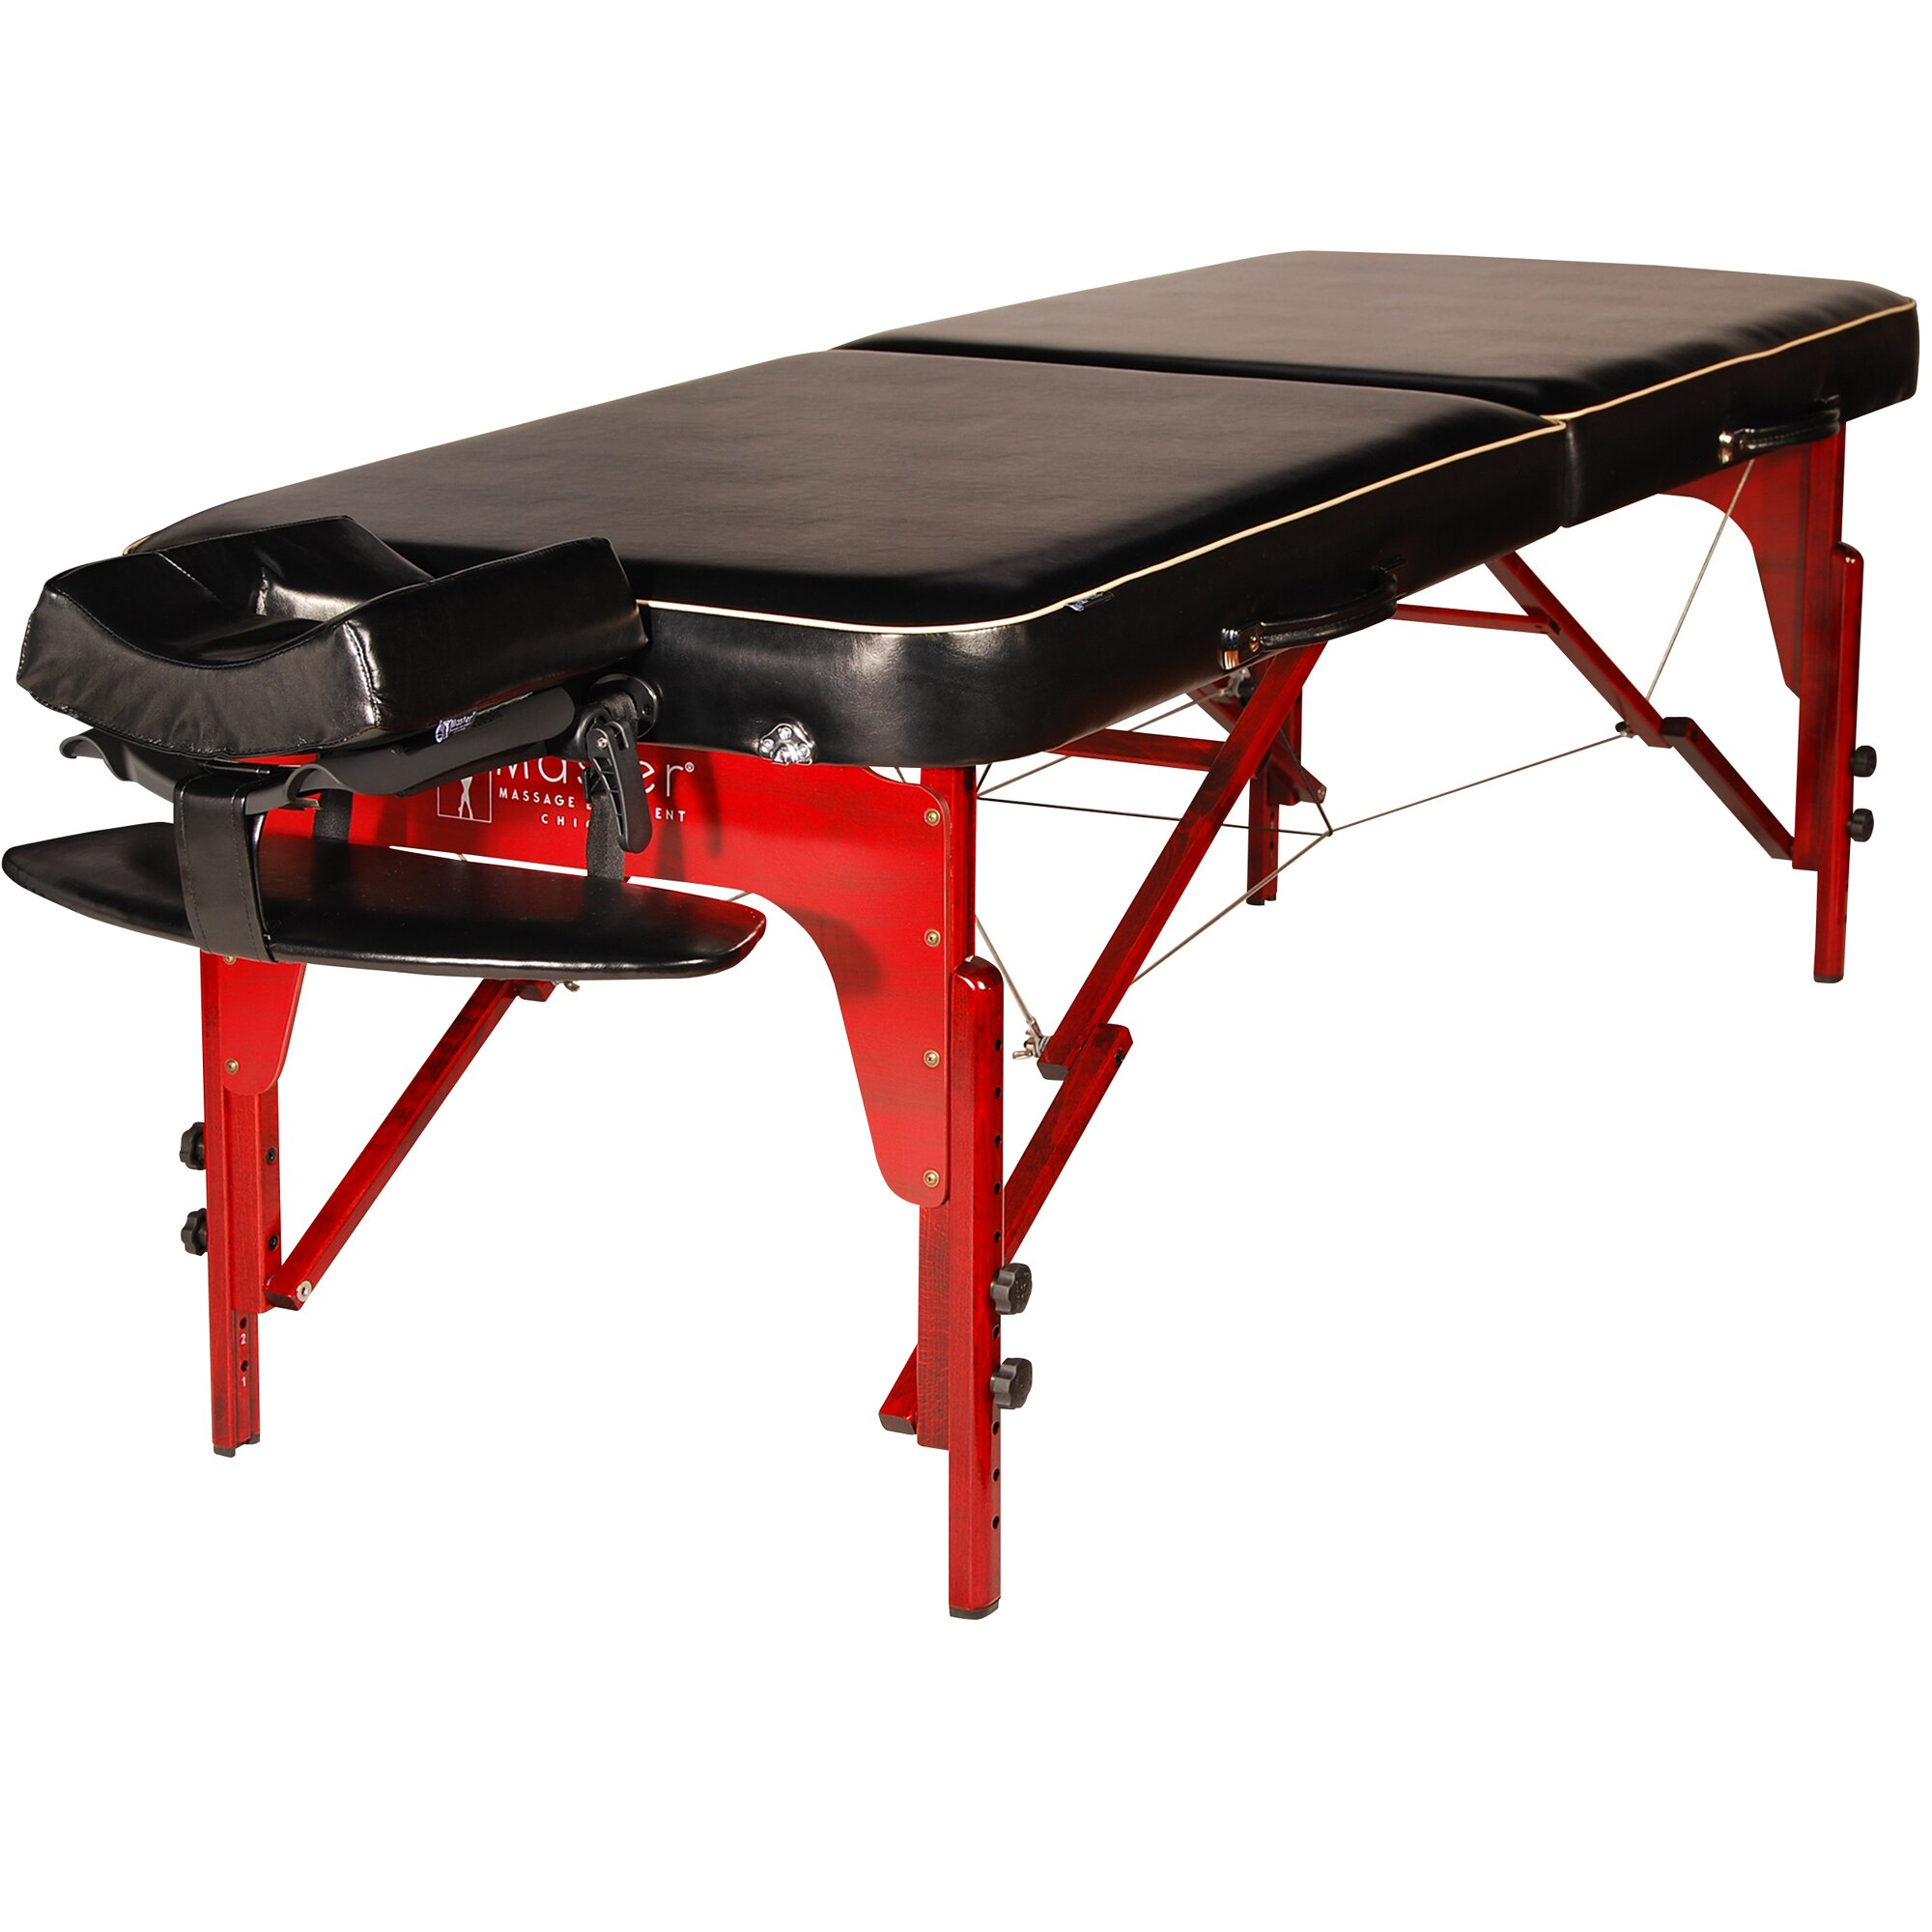 Portable Massage Table Prices Portable Solar Power Station Uk Portable Outdoor Kitchen Uk 4tb Portable Hdd Price In Bangladesh: Master Massage Monroe Portable Massage Table